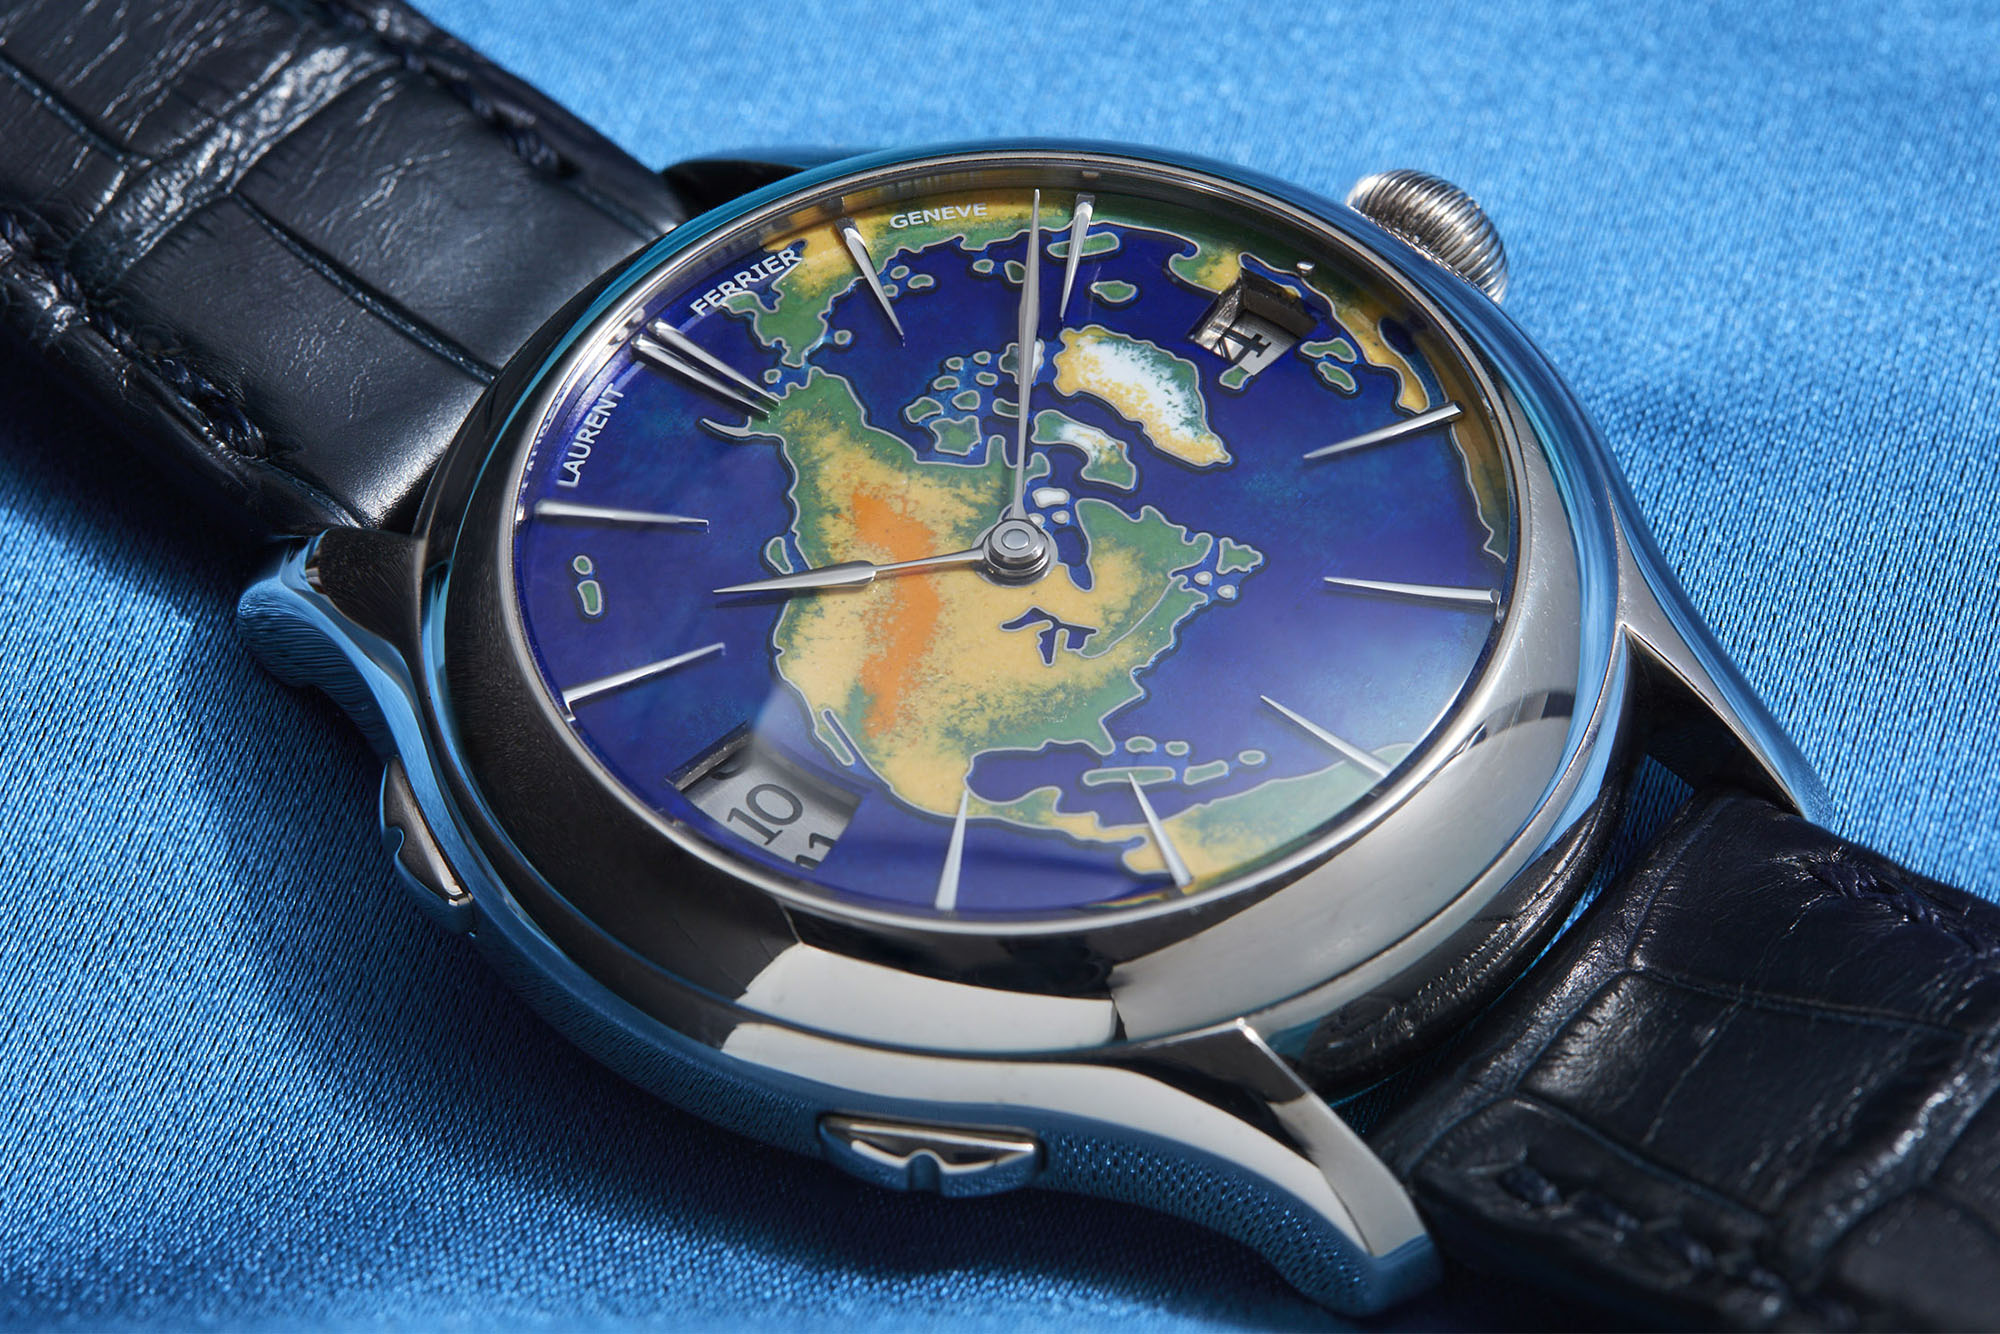 Laurent_Ferrier_Galet_Traveller_Enamel_CP03027_2_site.jpg